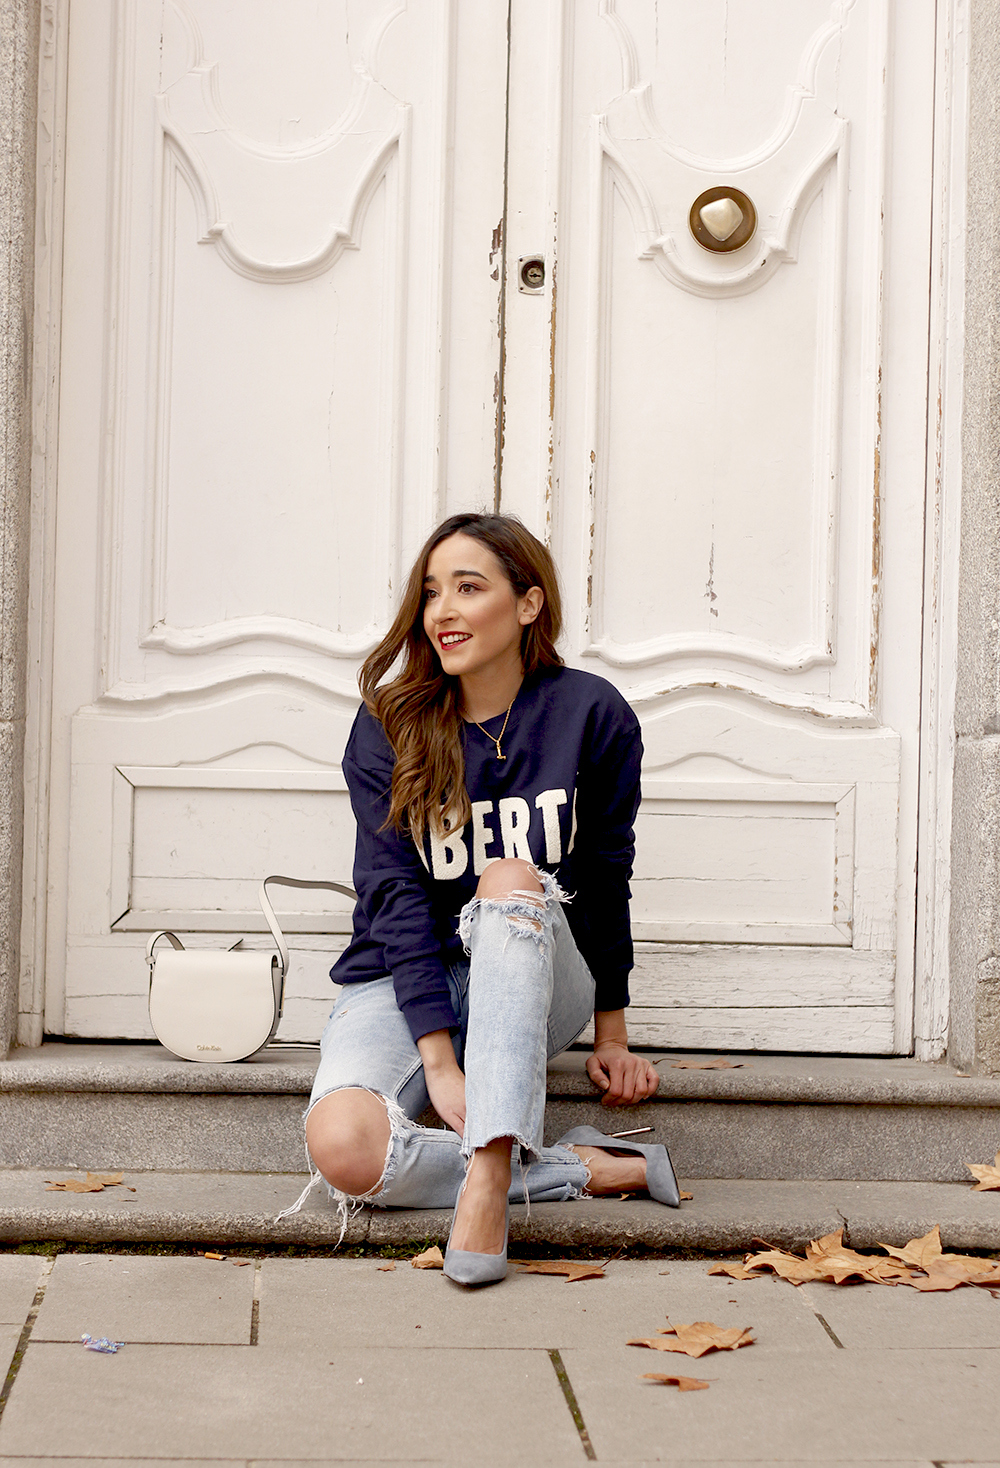 Sweatshirt ripped jeans clavin klein white bag high heels street style outfit 20197